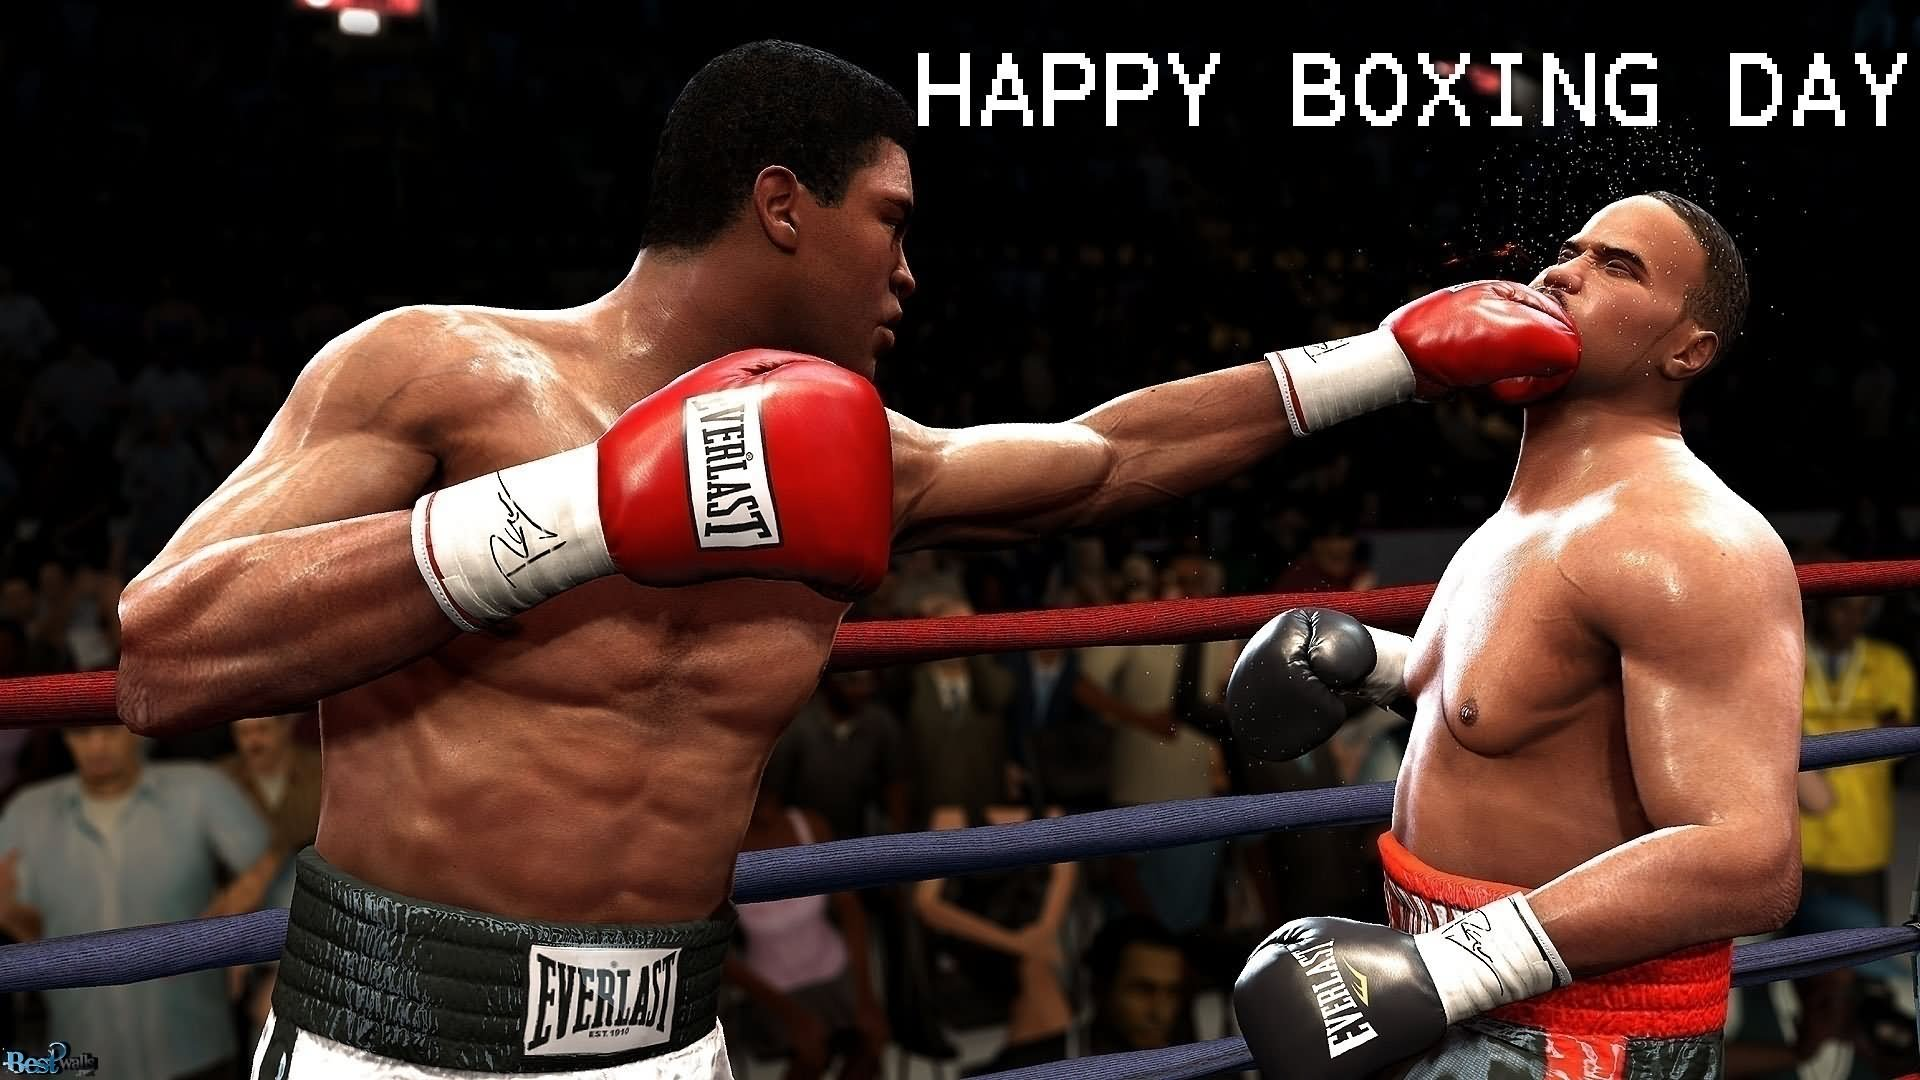 Happy Boxing Day Game Graphic